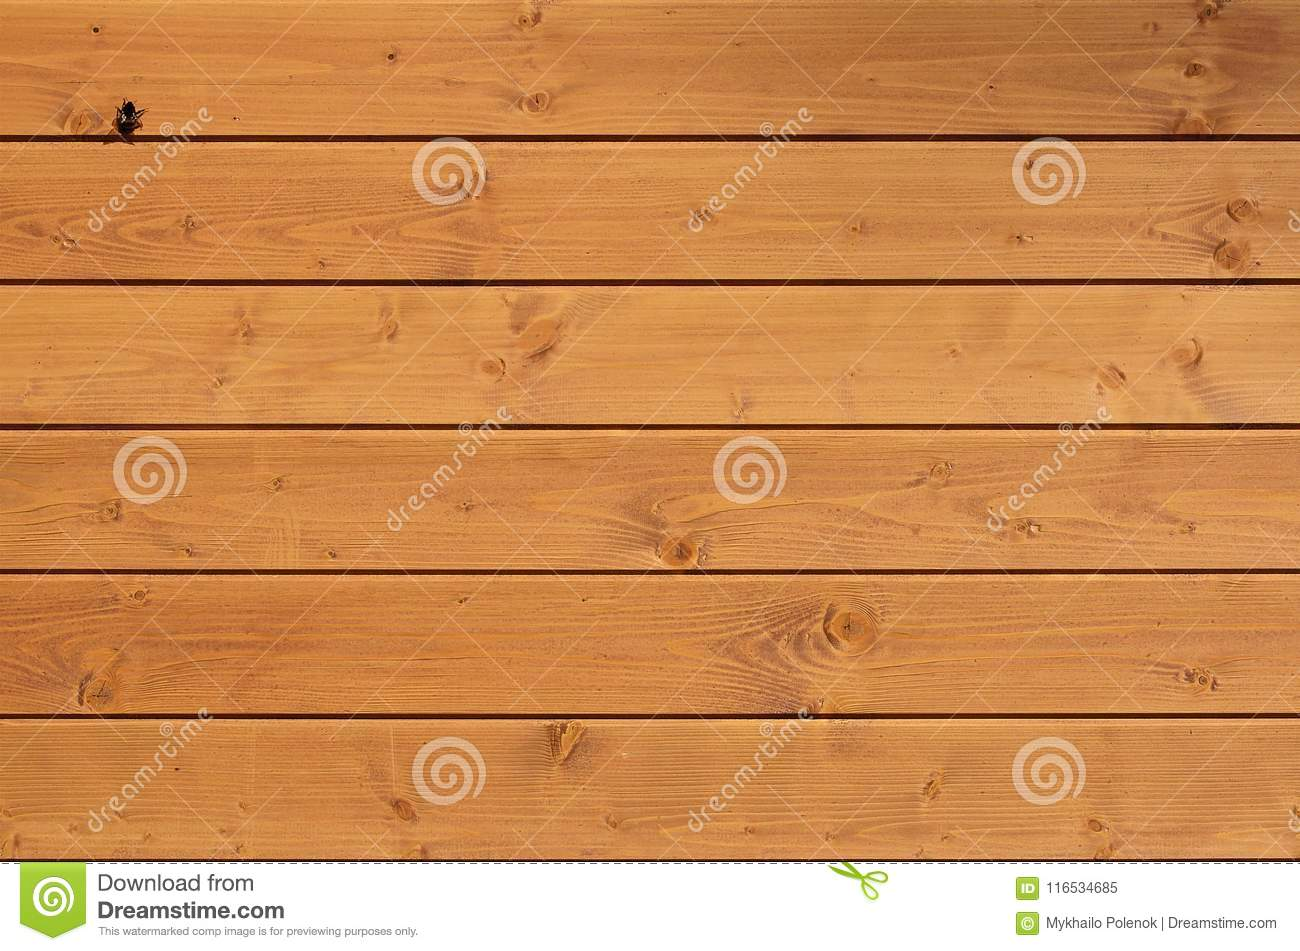 The texture of weathered wooden wall. Aged wooden plank fence of horizontal flat boards with small bee sitting on the